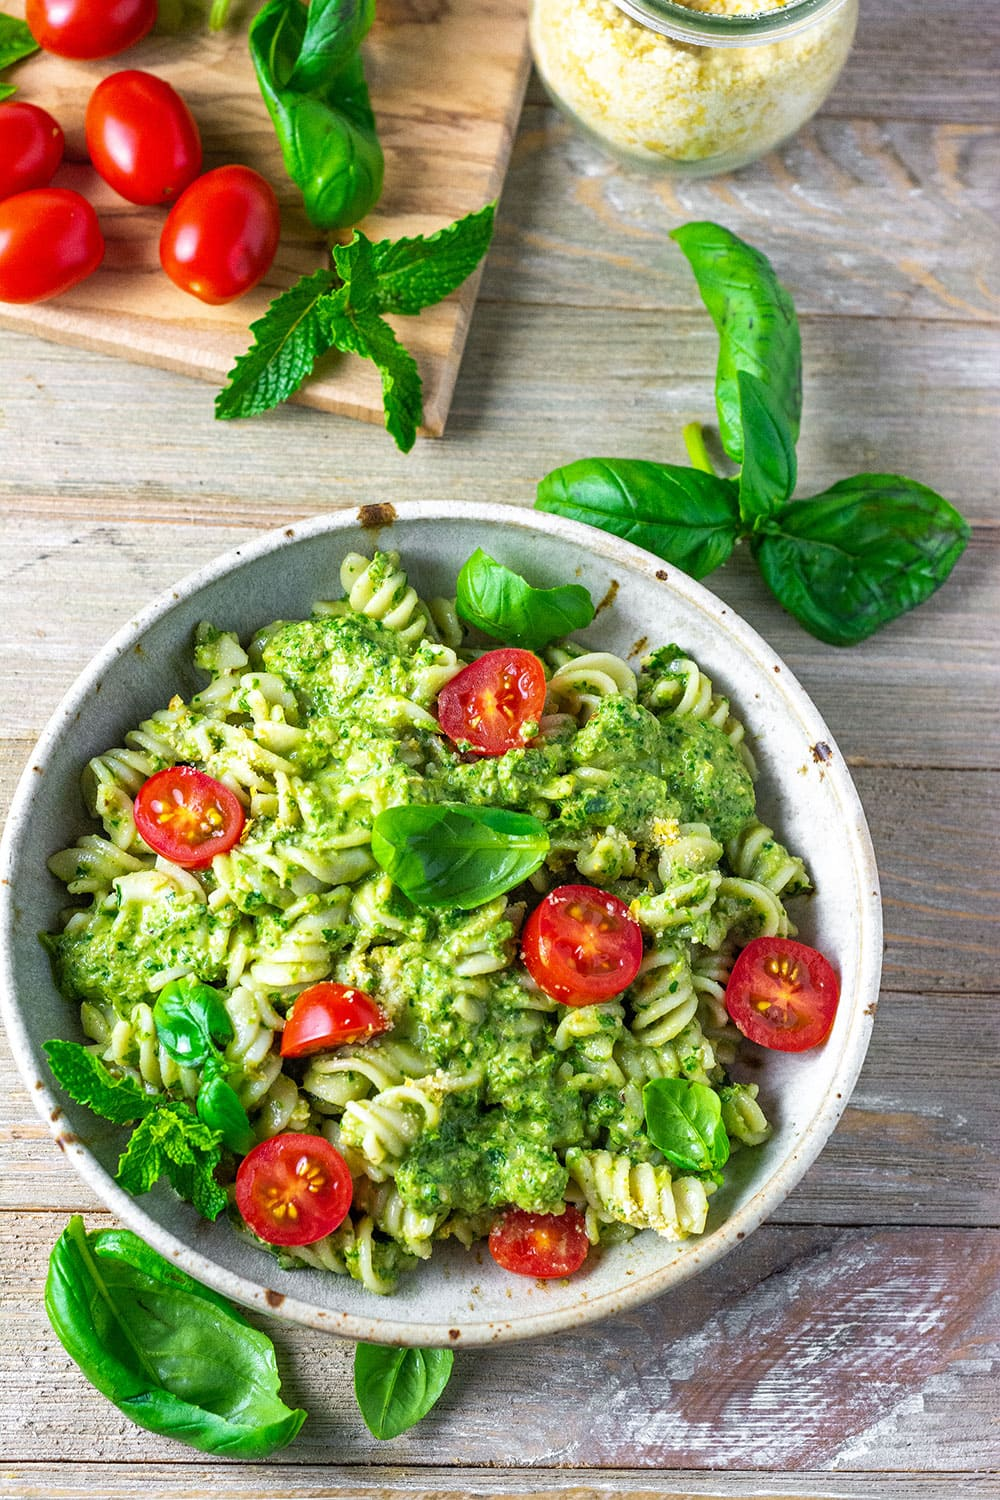 Overlay vegan pesto pasta, in a ream bowl on a wooden background with grape tomatoes, basil and mint leaves on a wooden cutting board